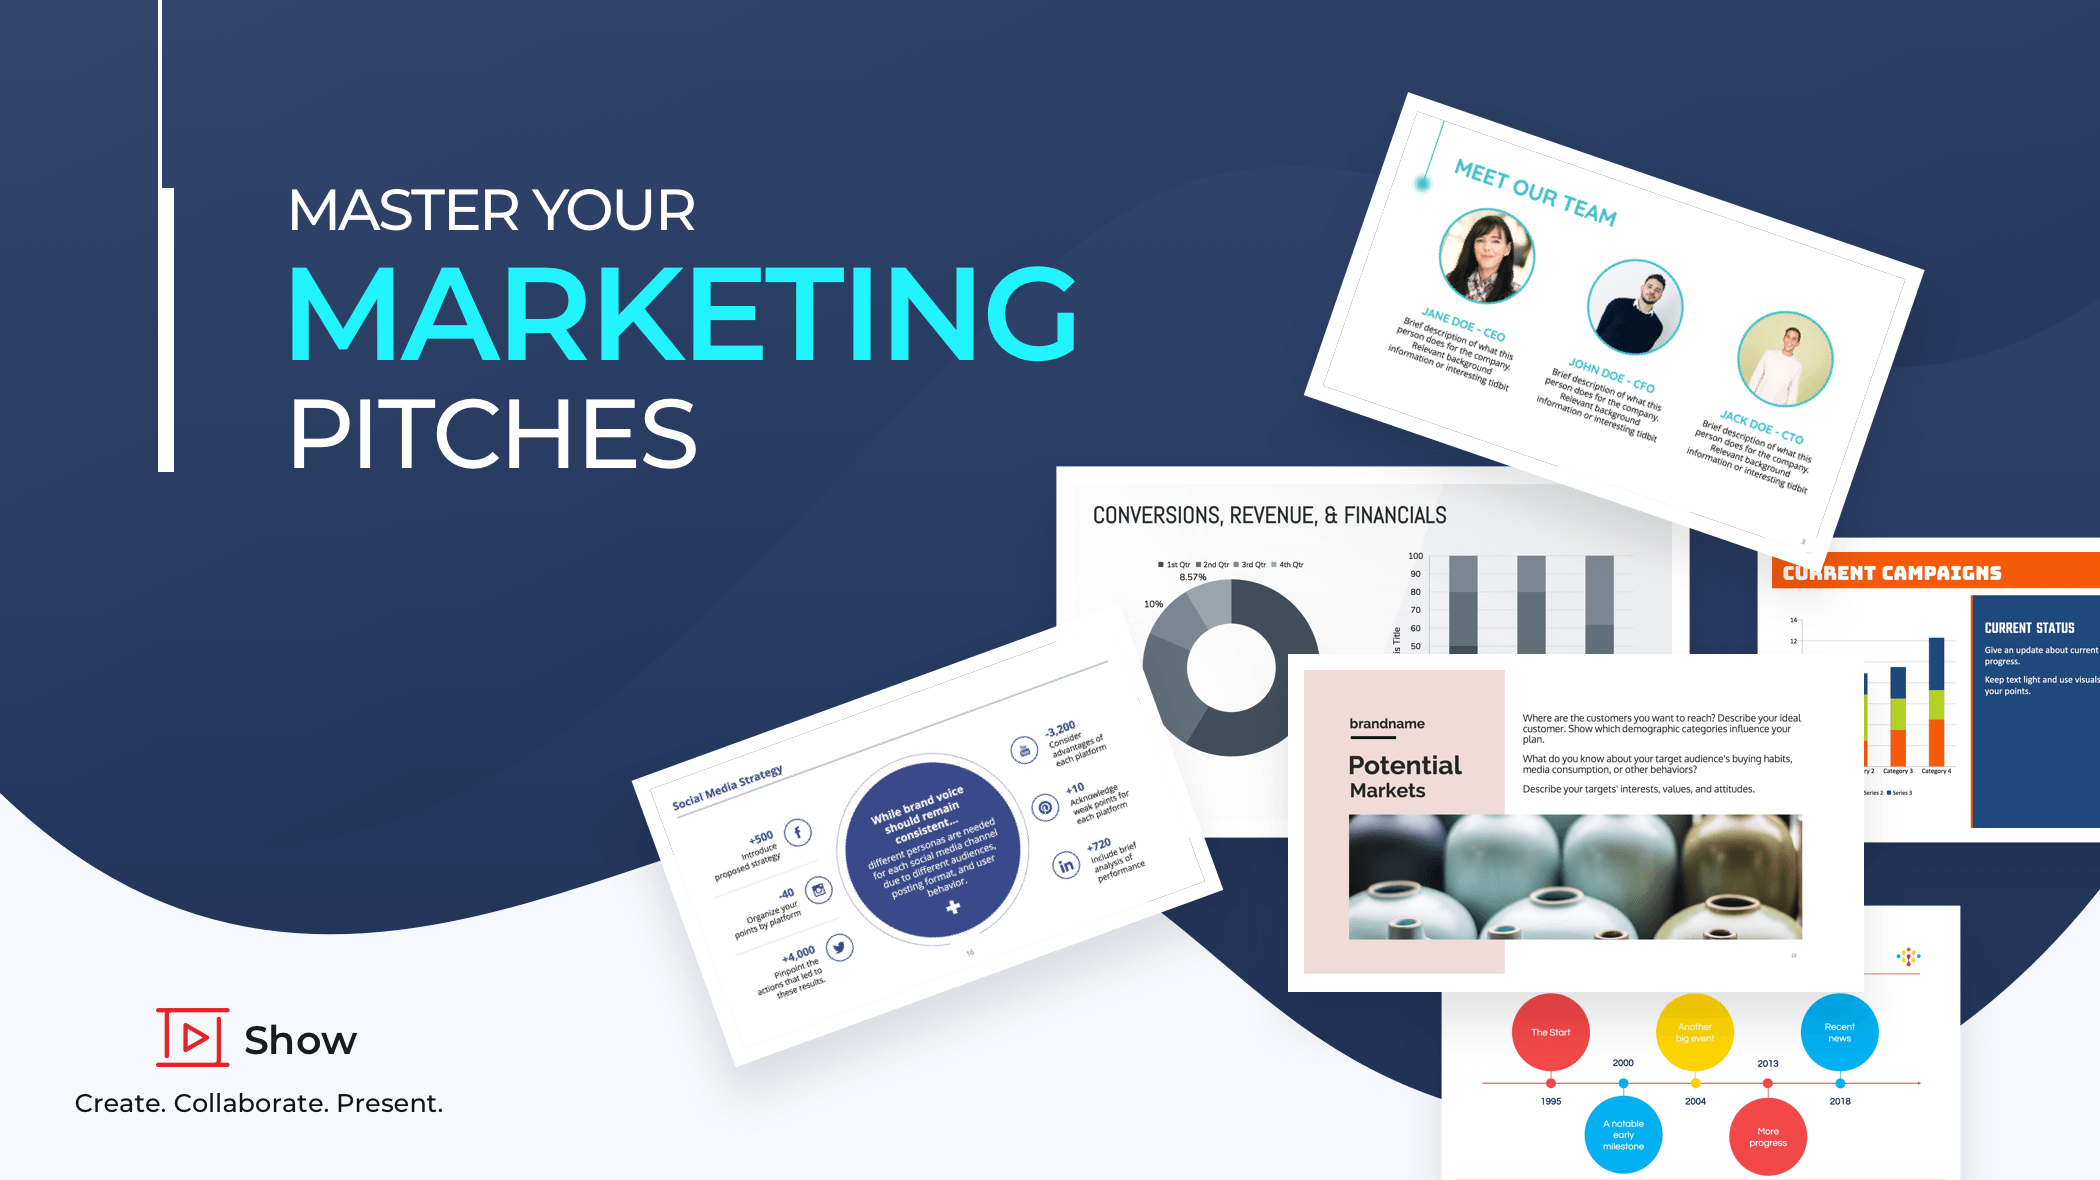 How to ace your marketing presentations?